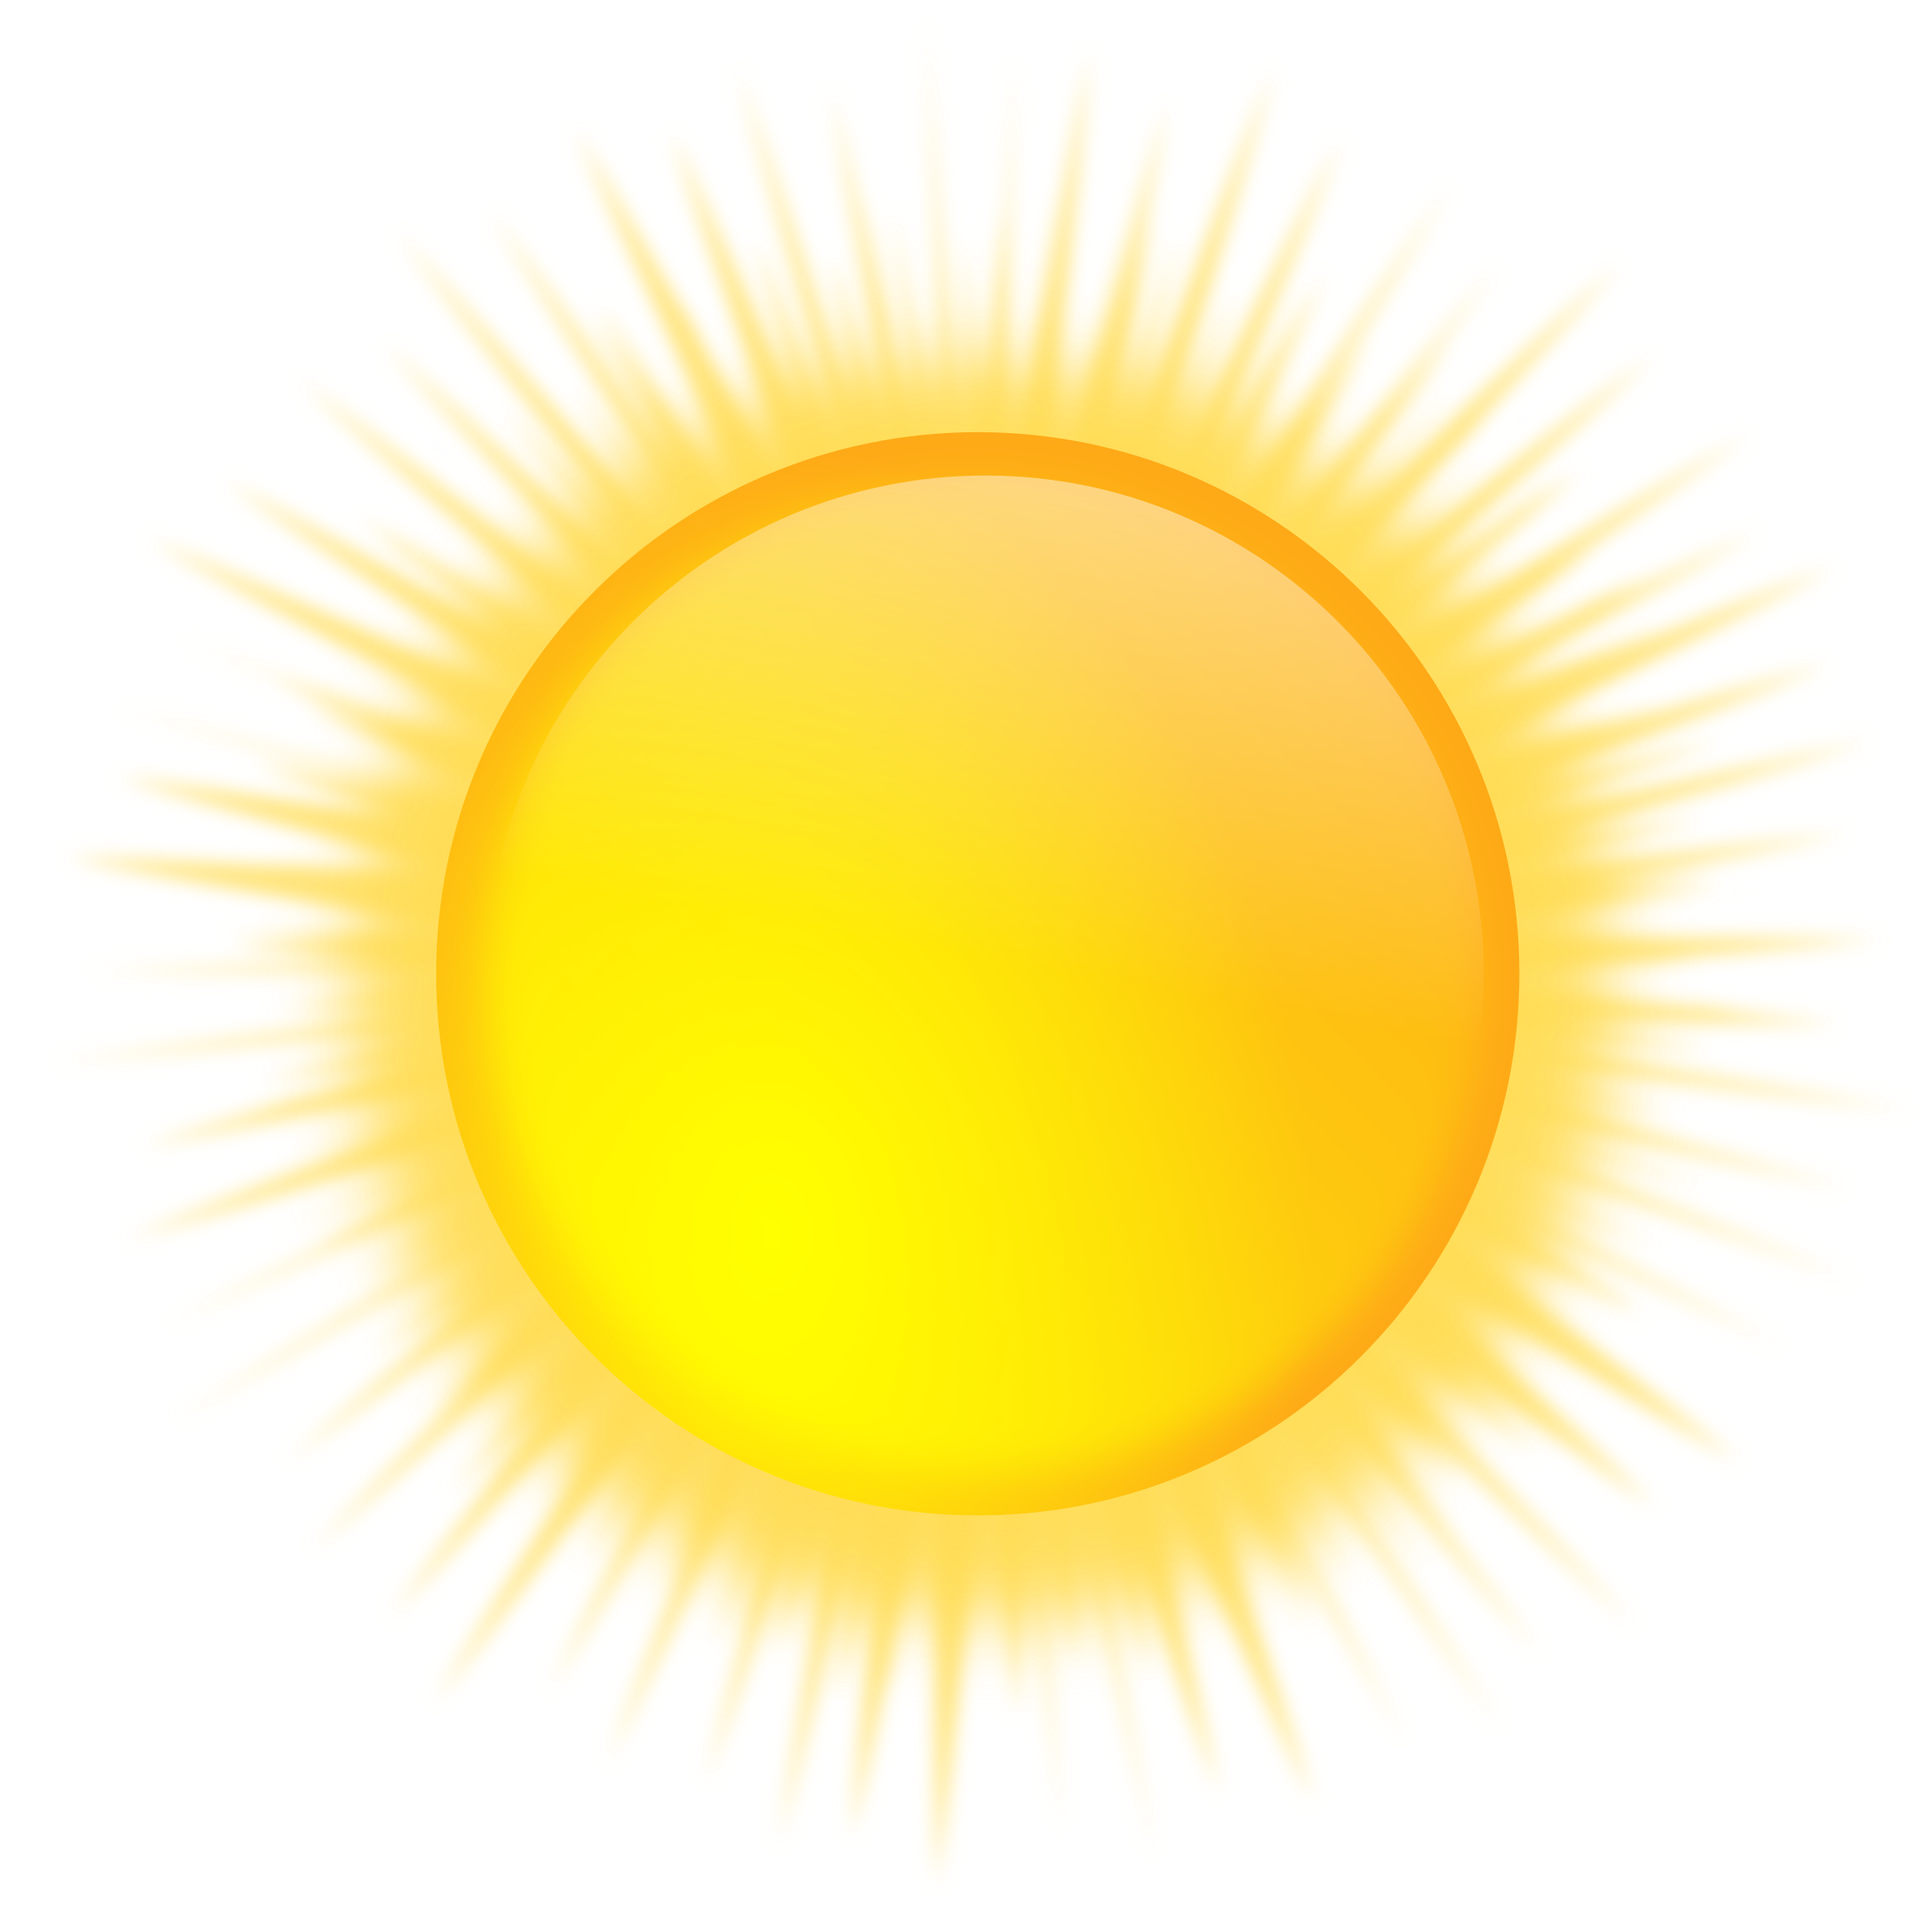 weather icon sunny Weather icons, Best places to live, Sun